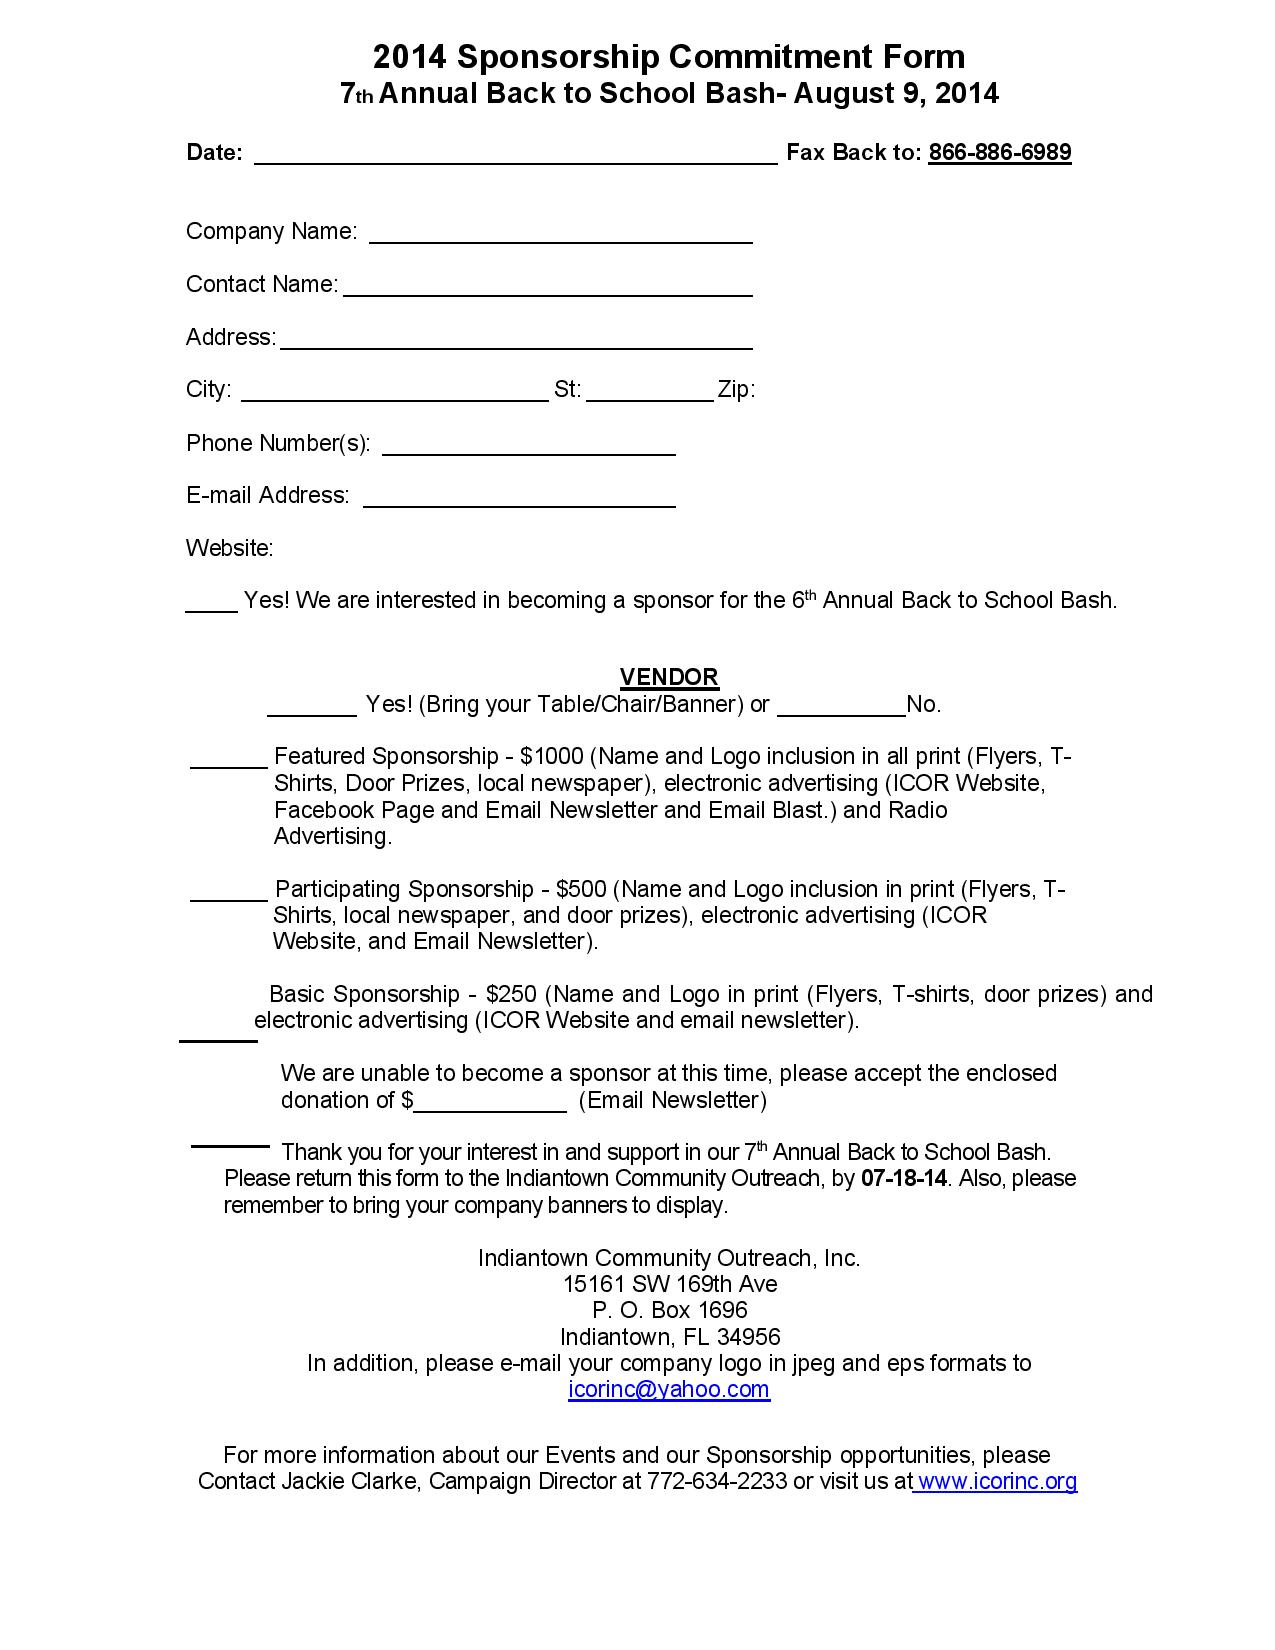 2014 back to school events 100 images back 2 school for Fishing sponsorship application